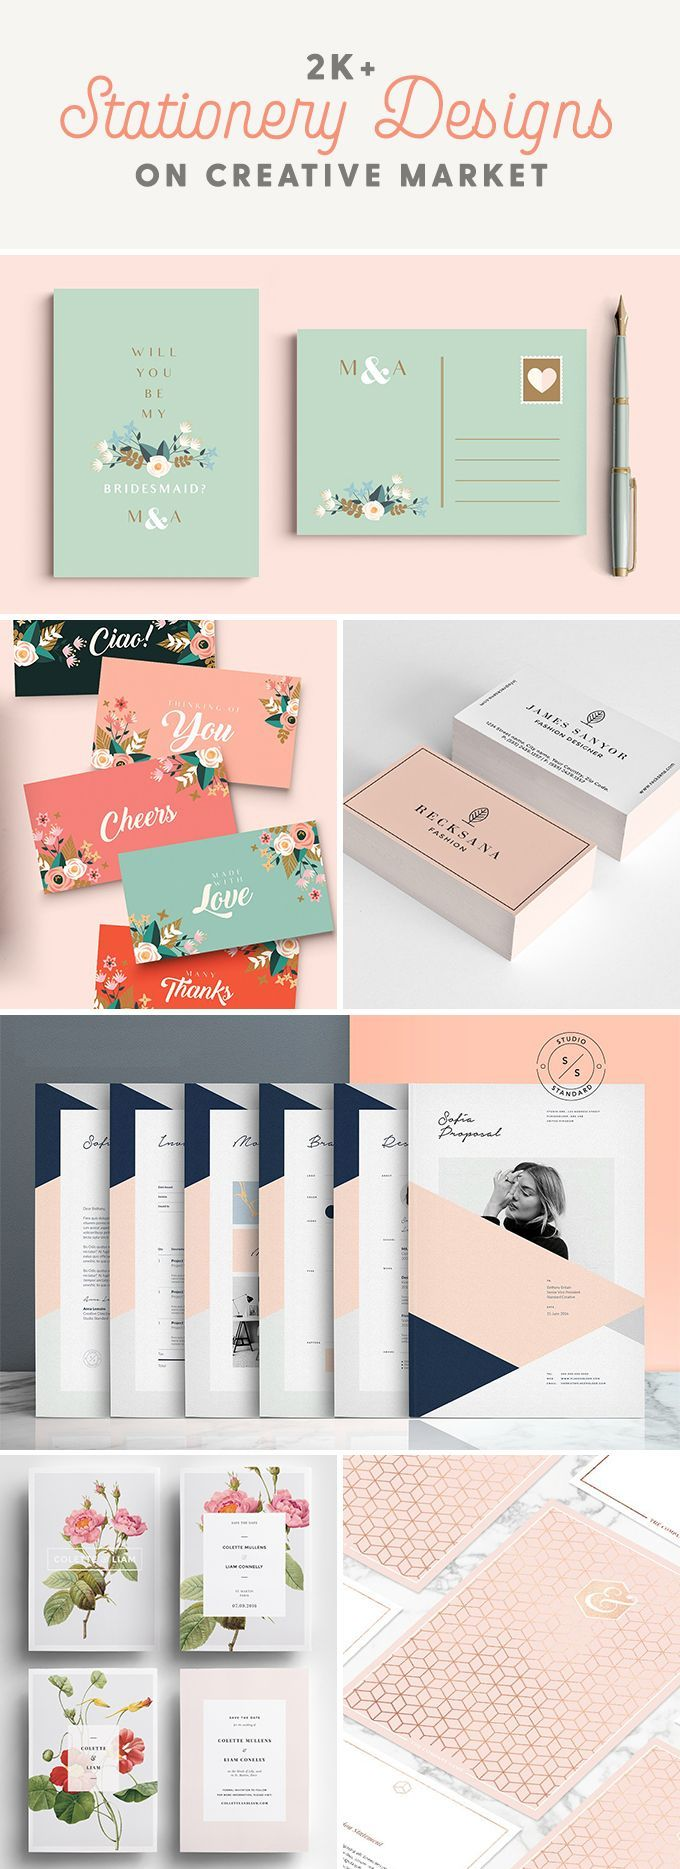 Printable stationery templates that you'll love